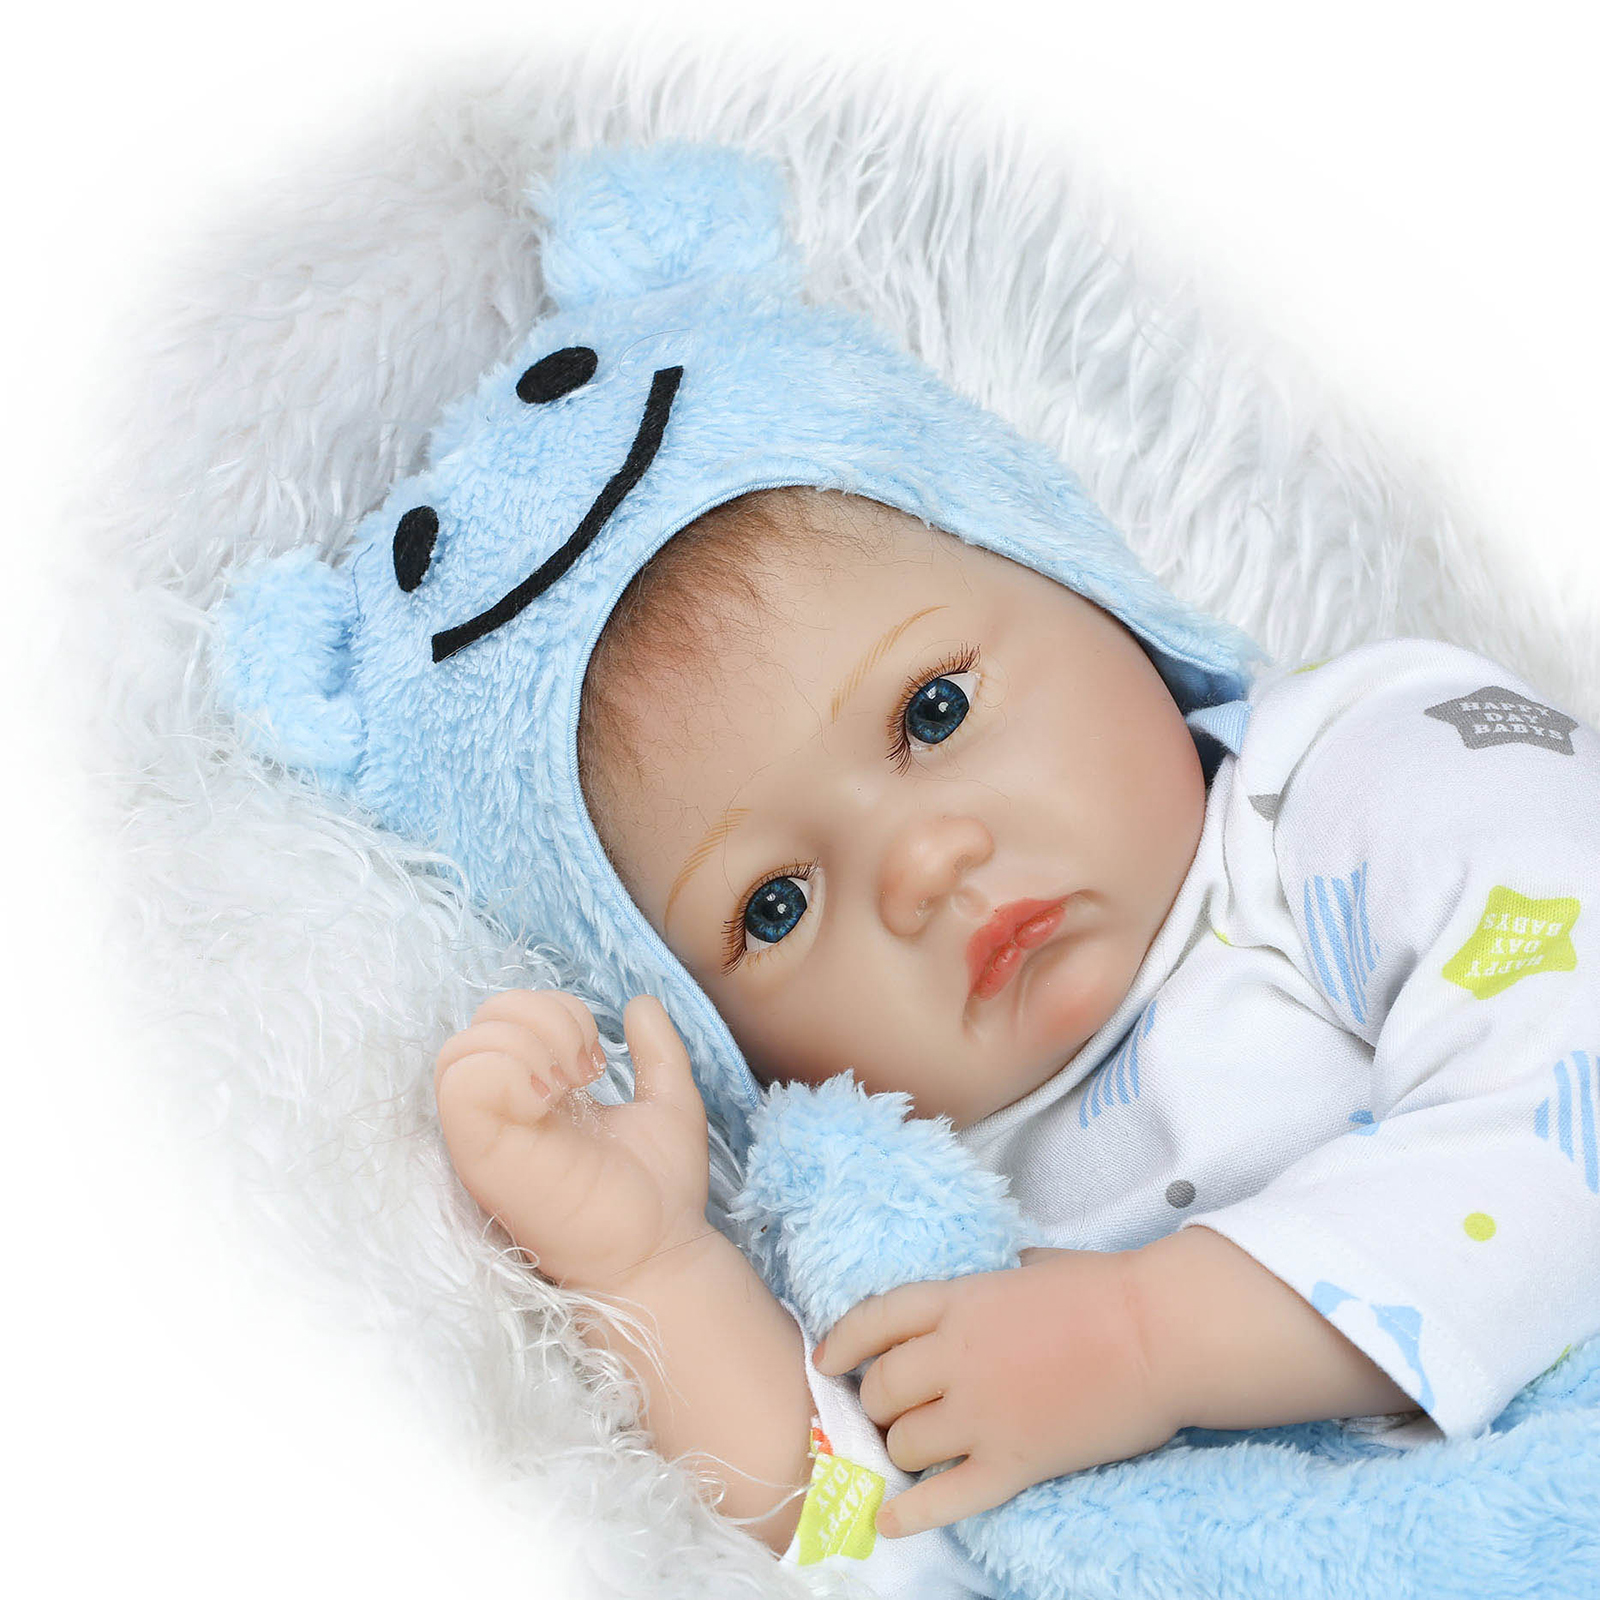 Reborn baby NPK DOLL 22INCH 55CM real touch silicone reborn dolls toys for childrens day gift bebes reborn bonecasReborn baby NPK DOLL 22INCH 55CM real touch silicone reborn dolls toys for childrens day gift bebes reborn bonecas